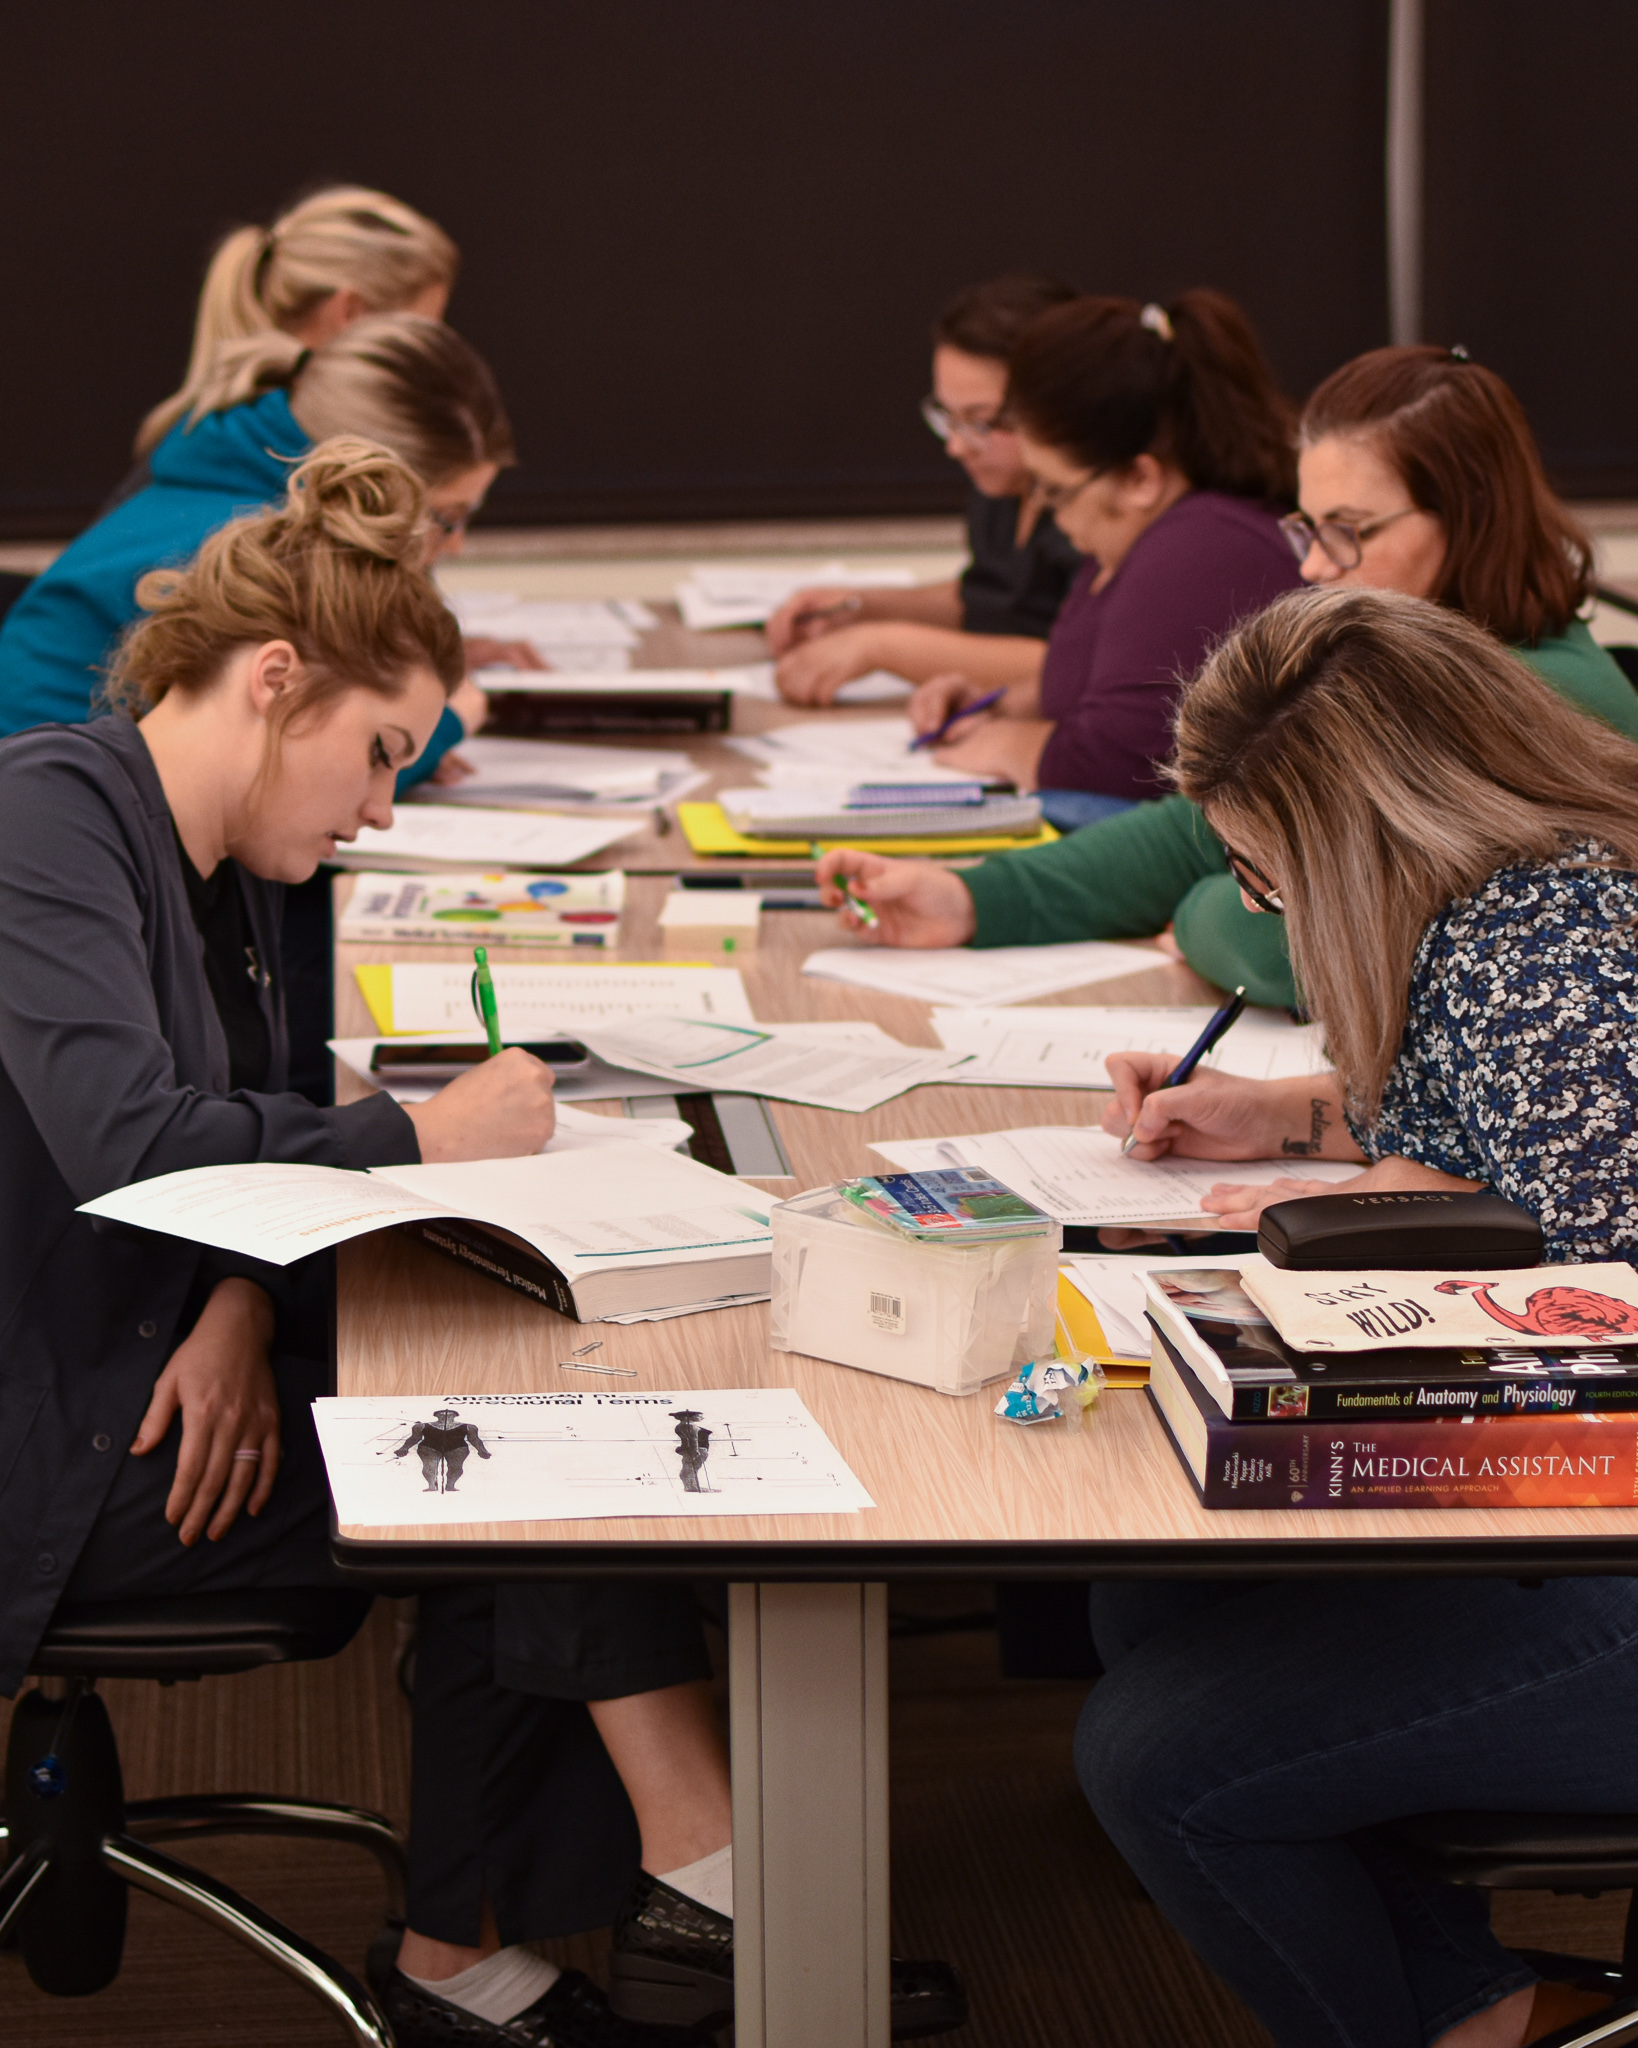 Medical Assisting students work on an assignment in the PACCAR Center.